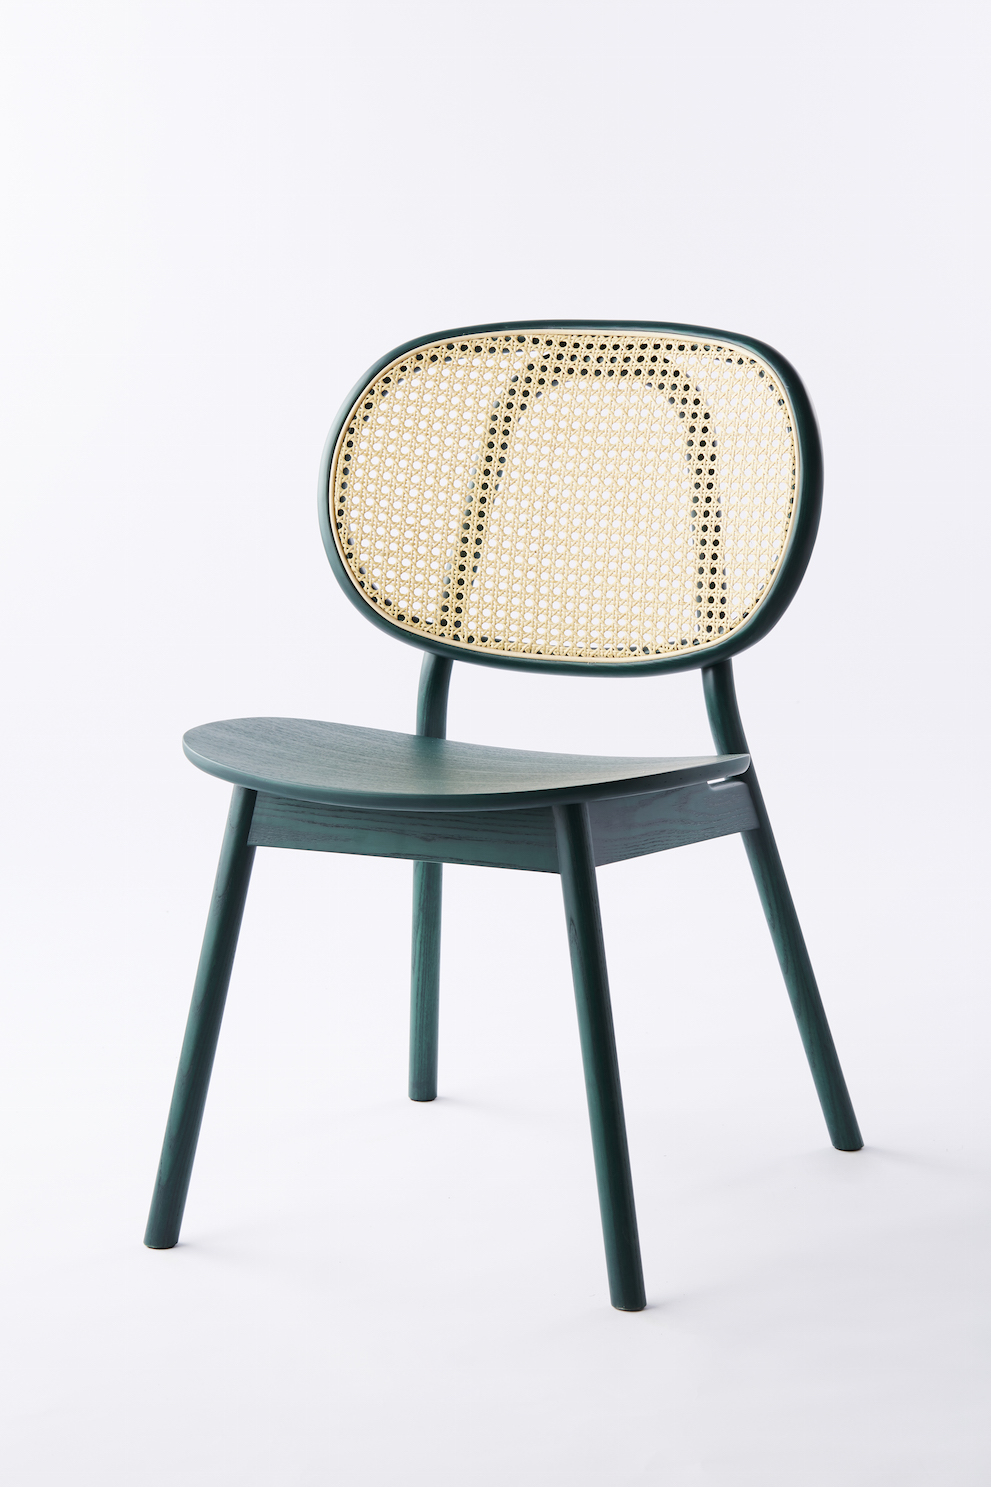 Cane_Side Chair 2018_01_G_605 copy.jpg